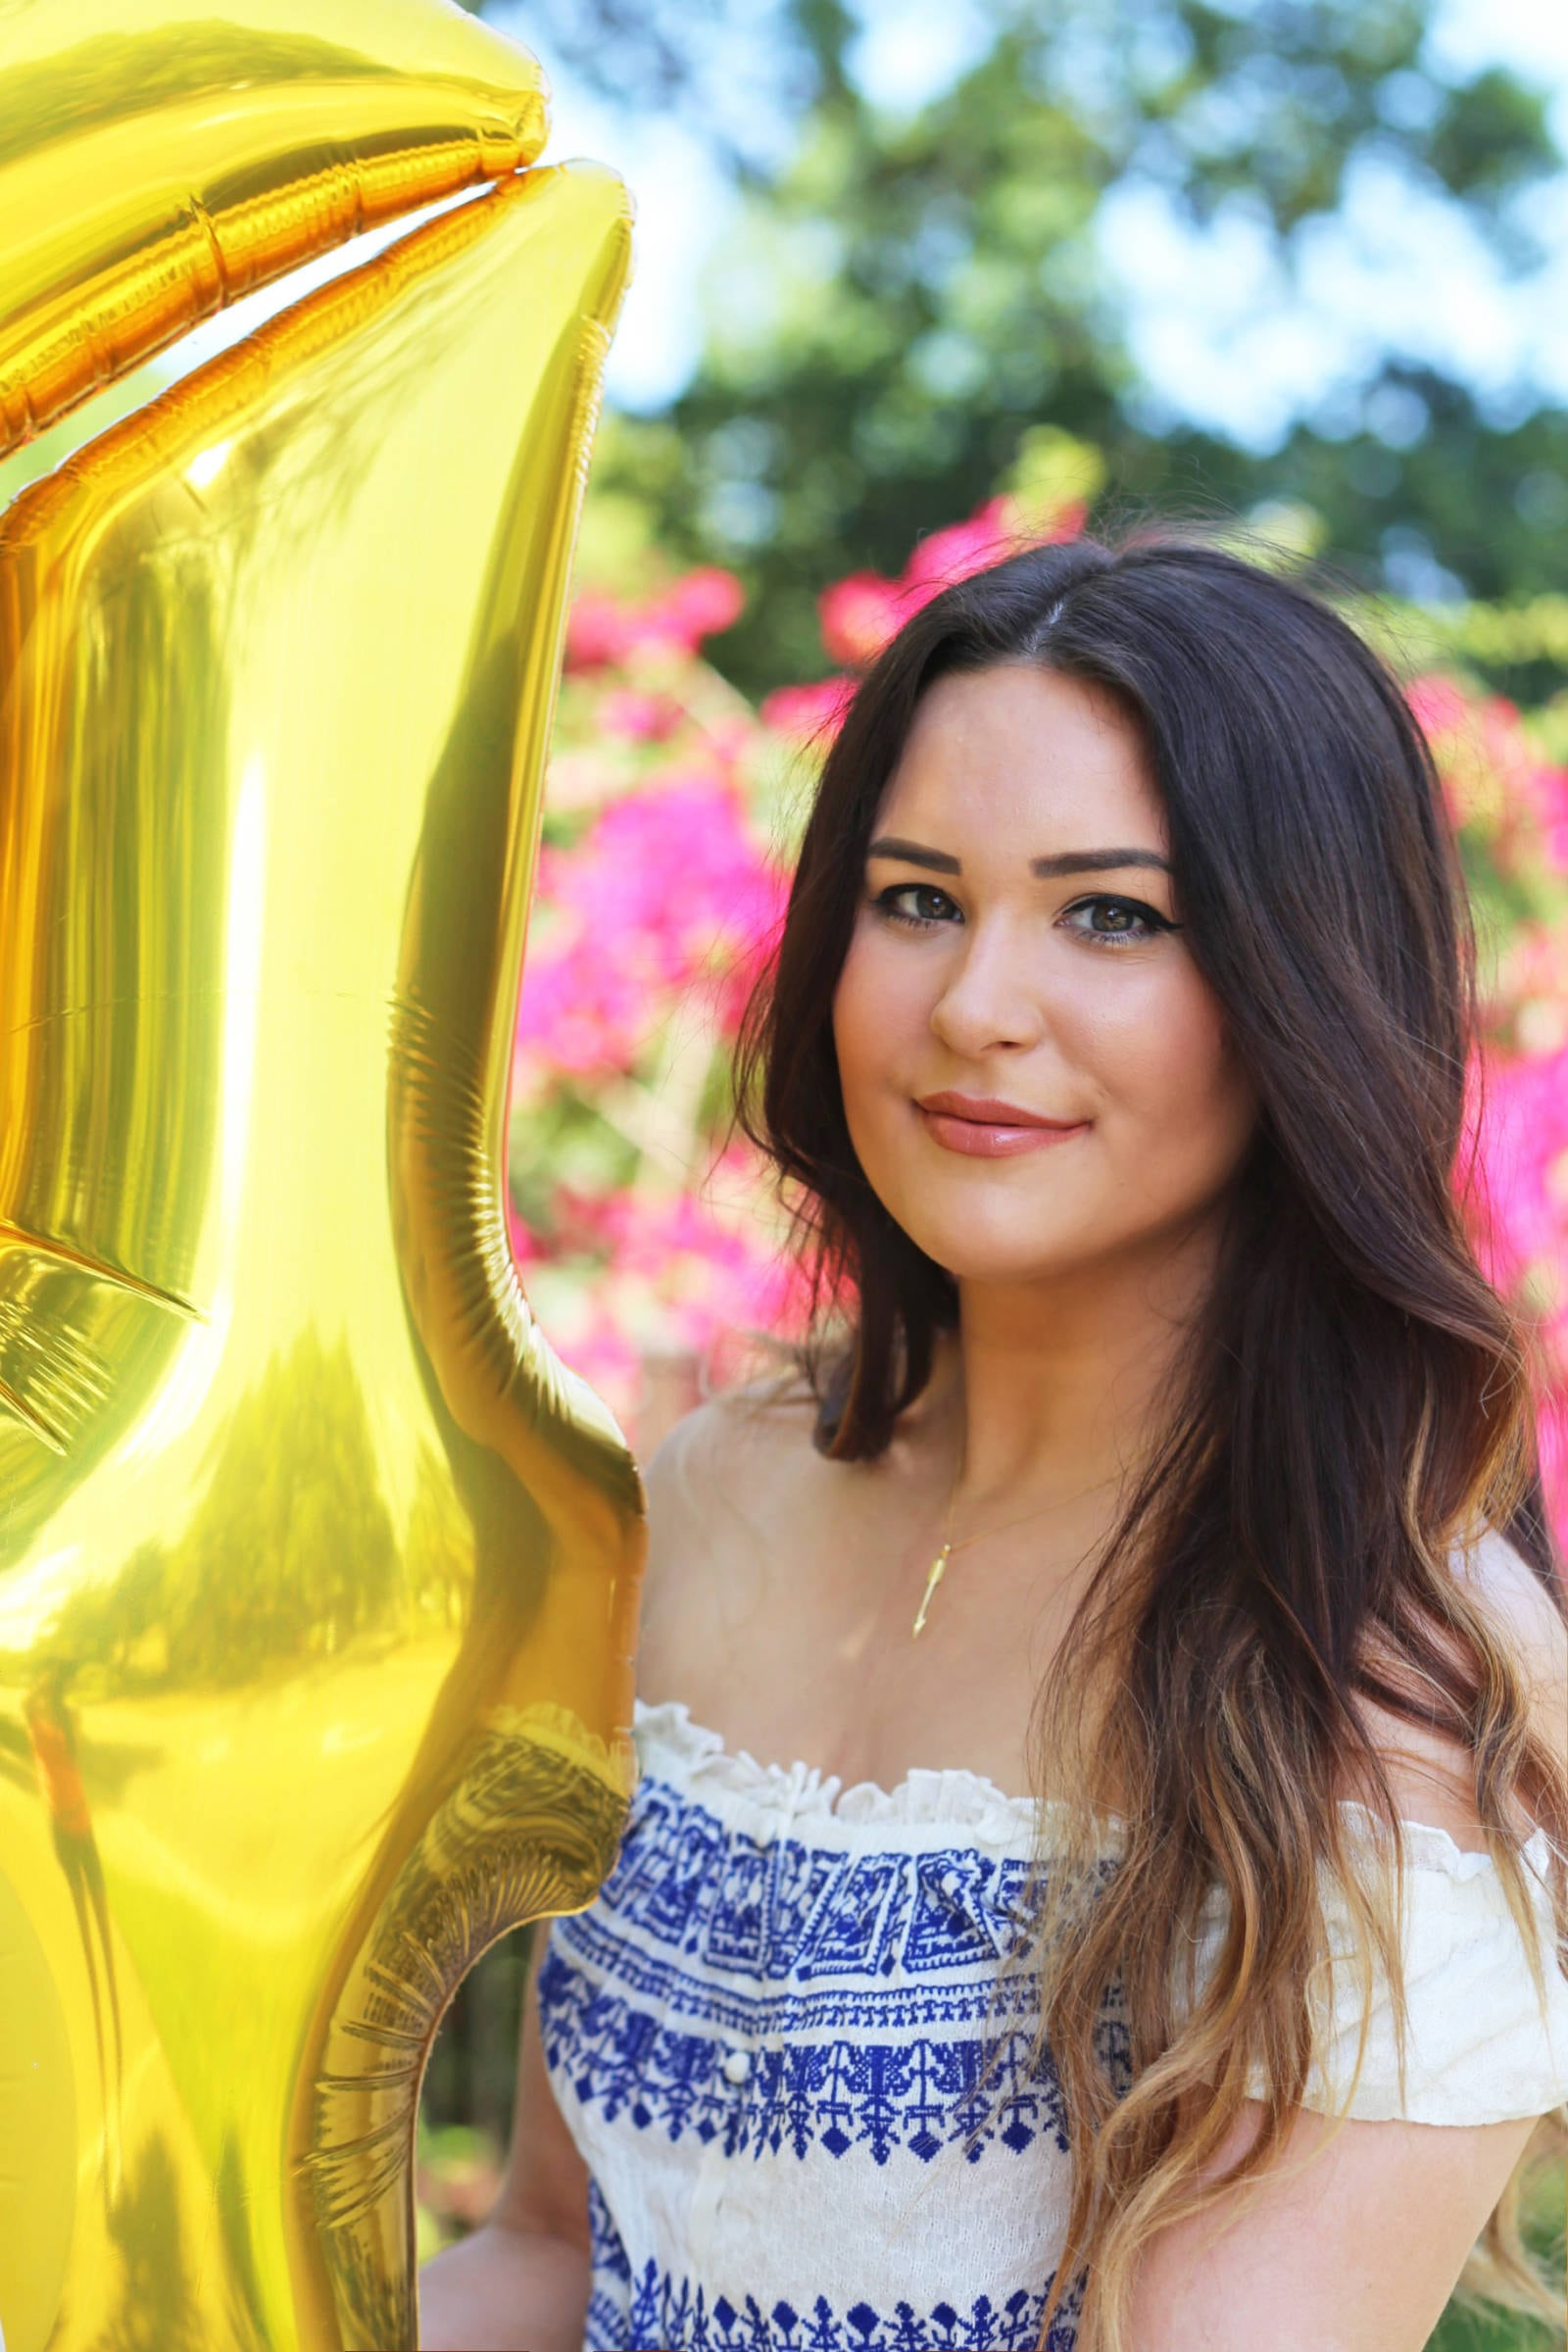 Where to purchase a large gold number balloon for a special occasion